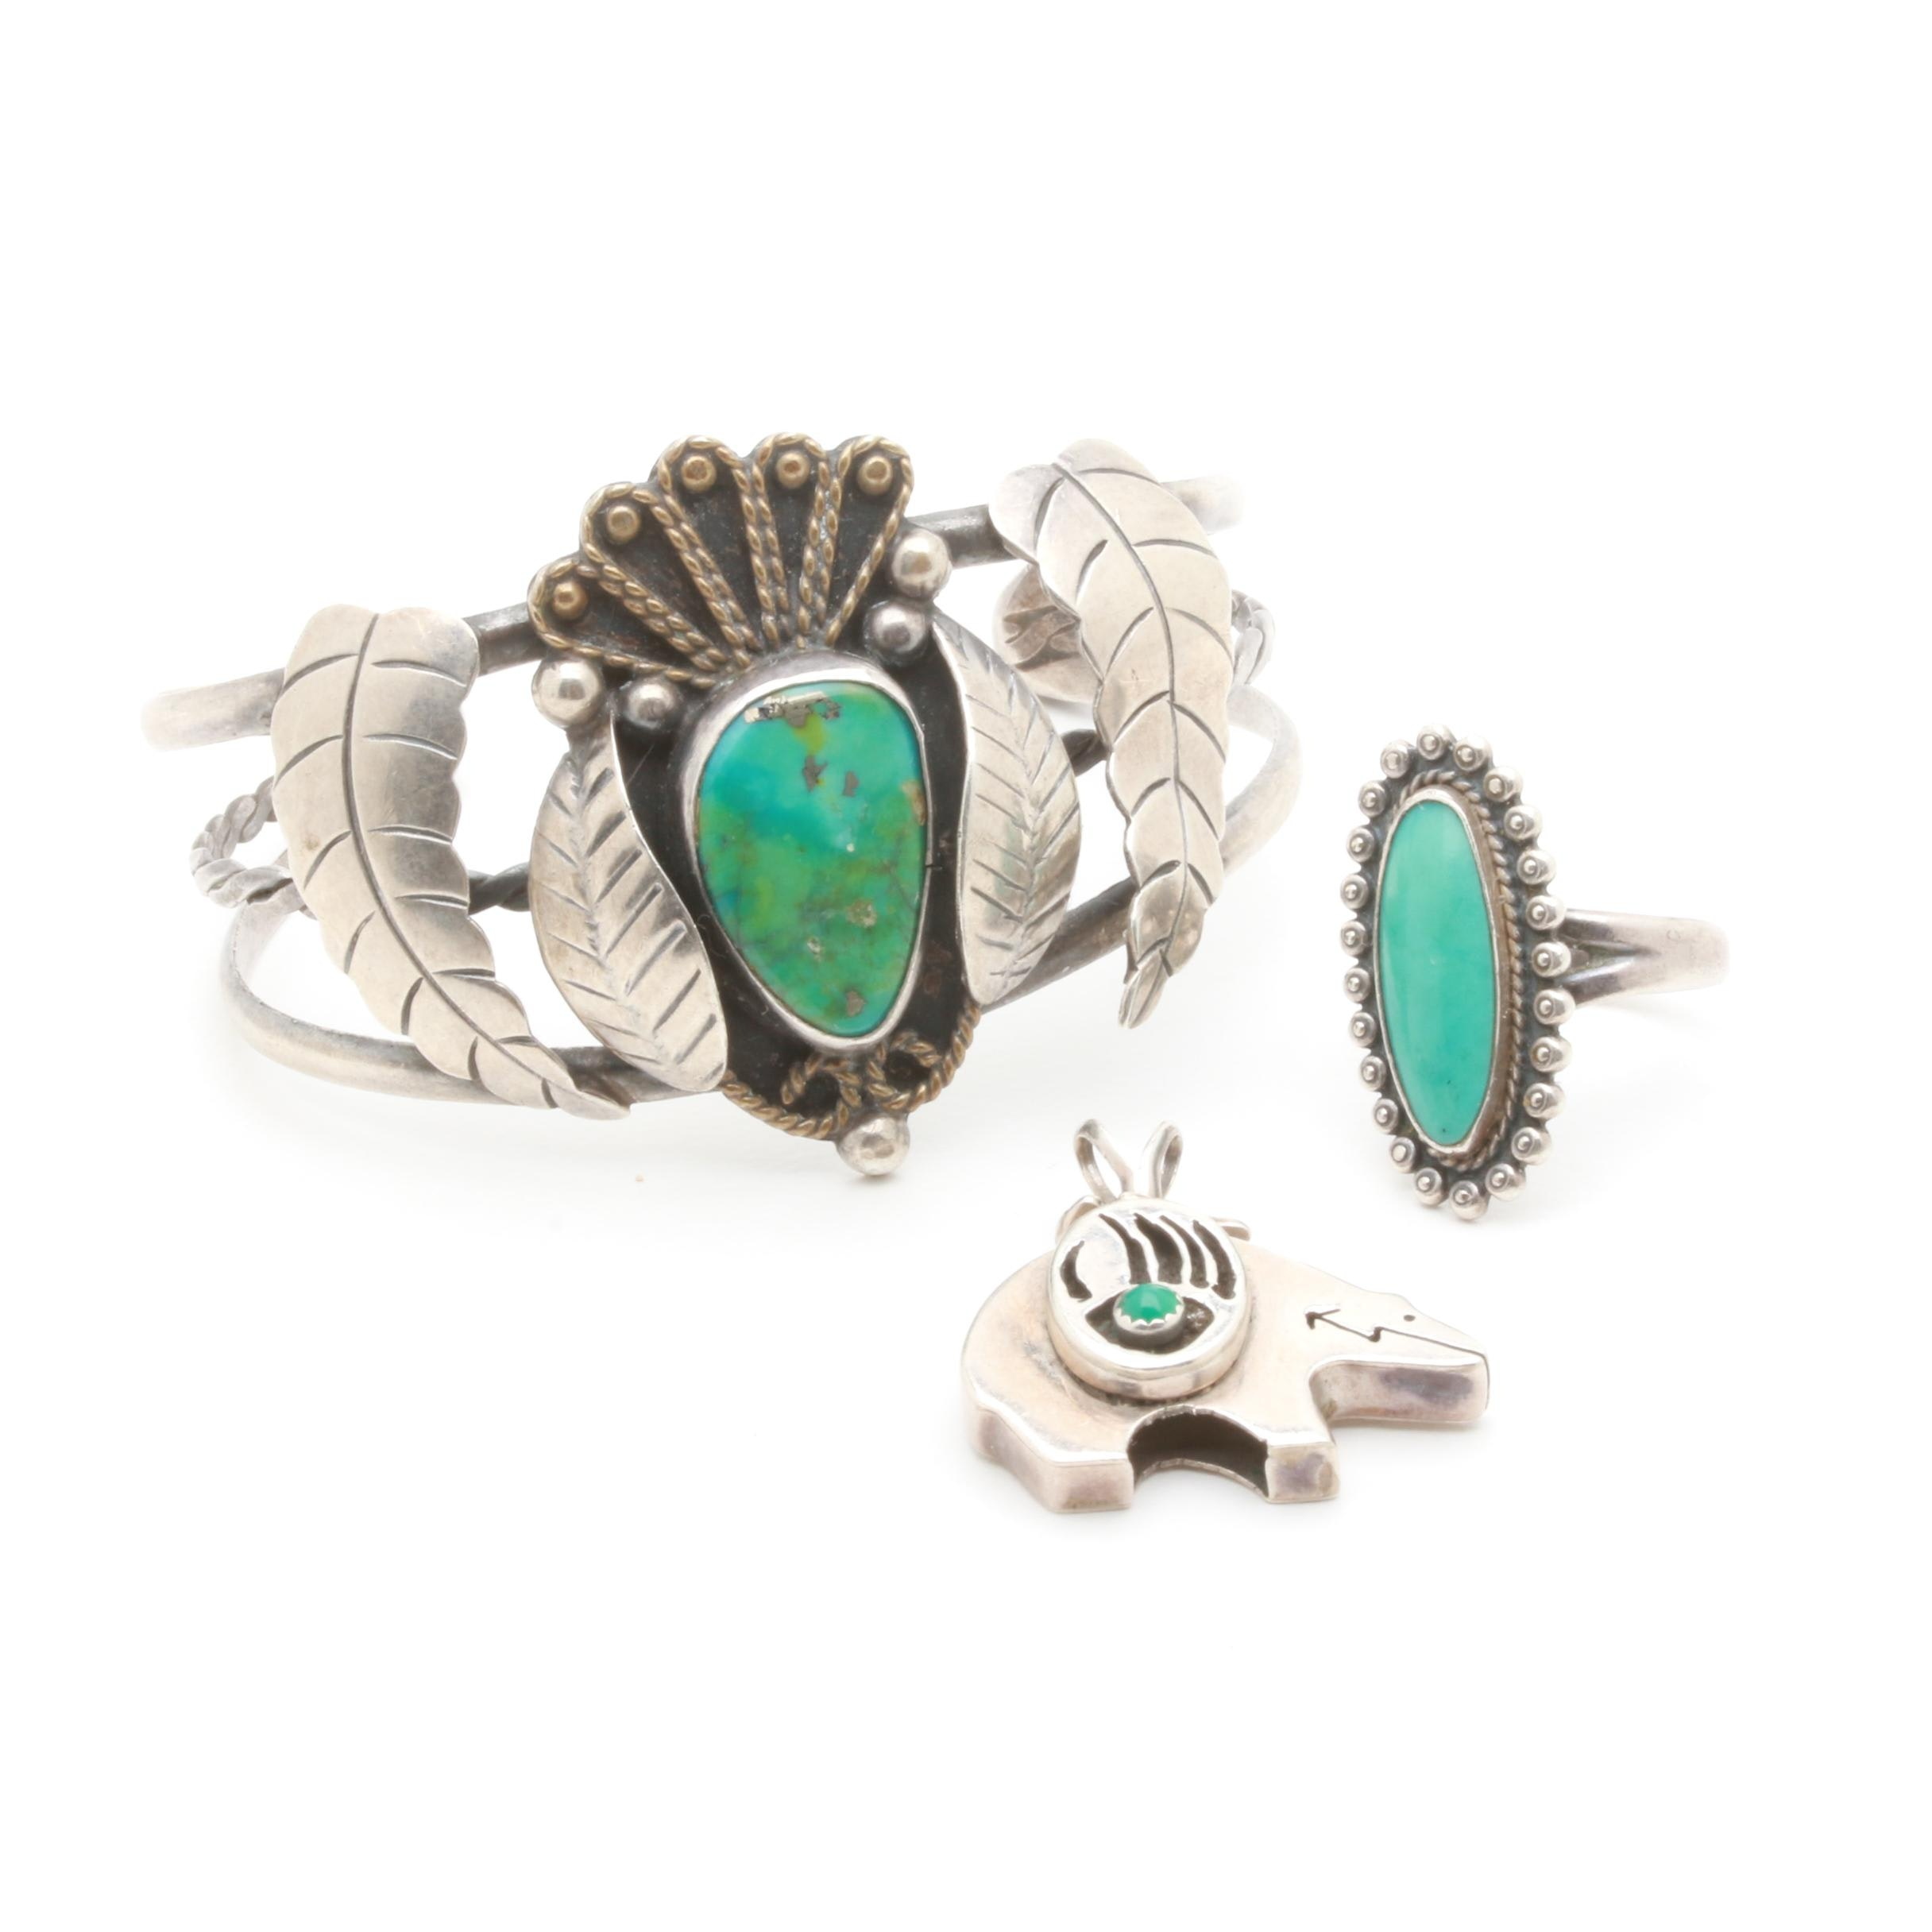 Southwestern Style Turquoise and Chalcedony Jewelry Selection